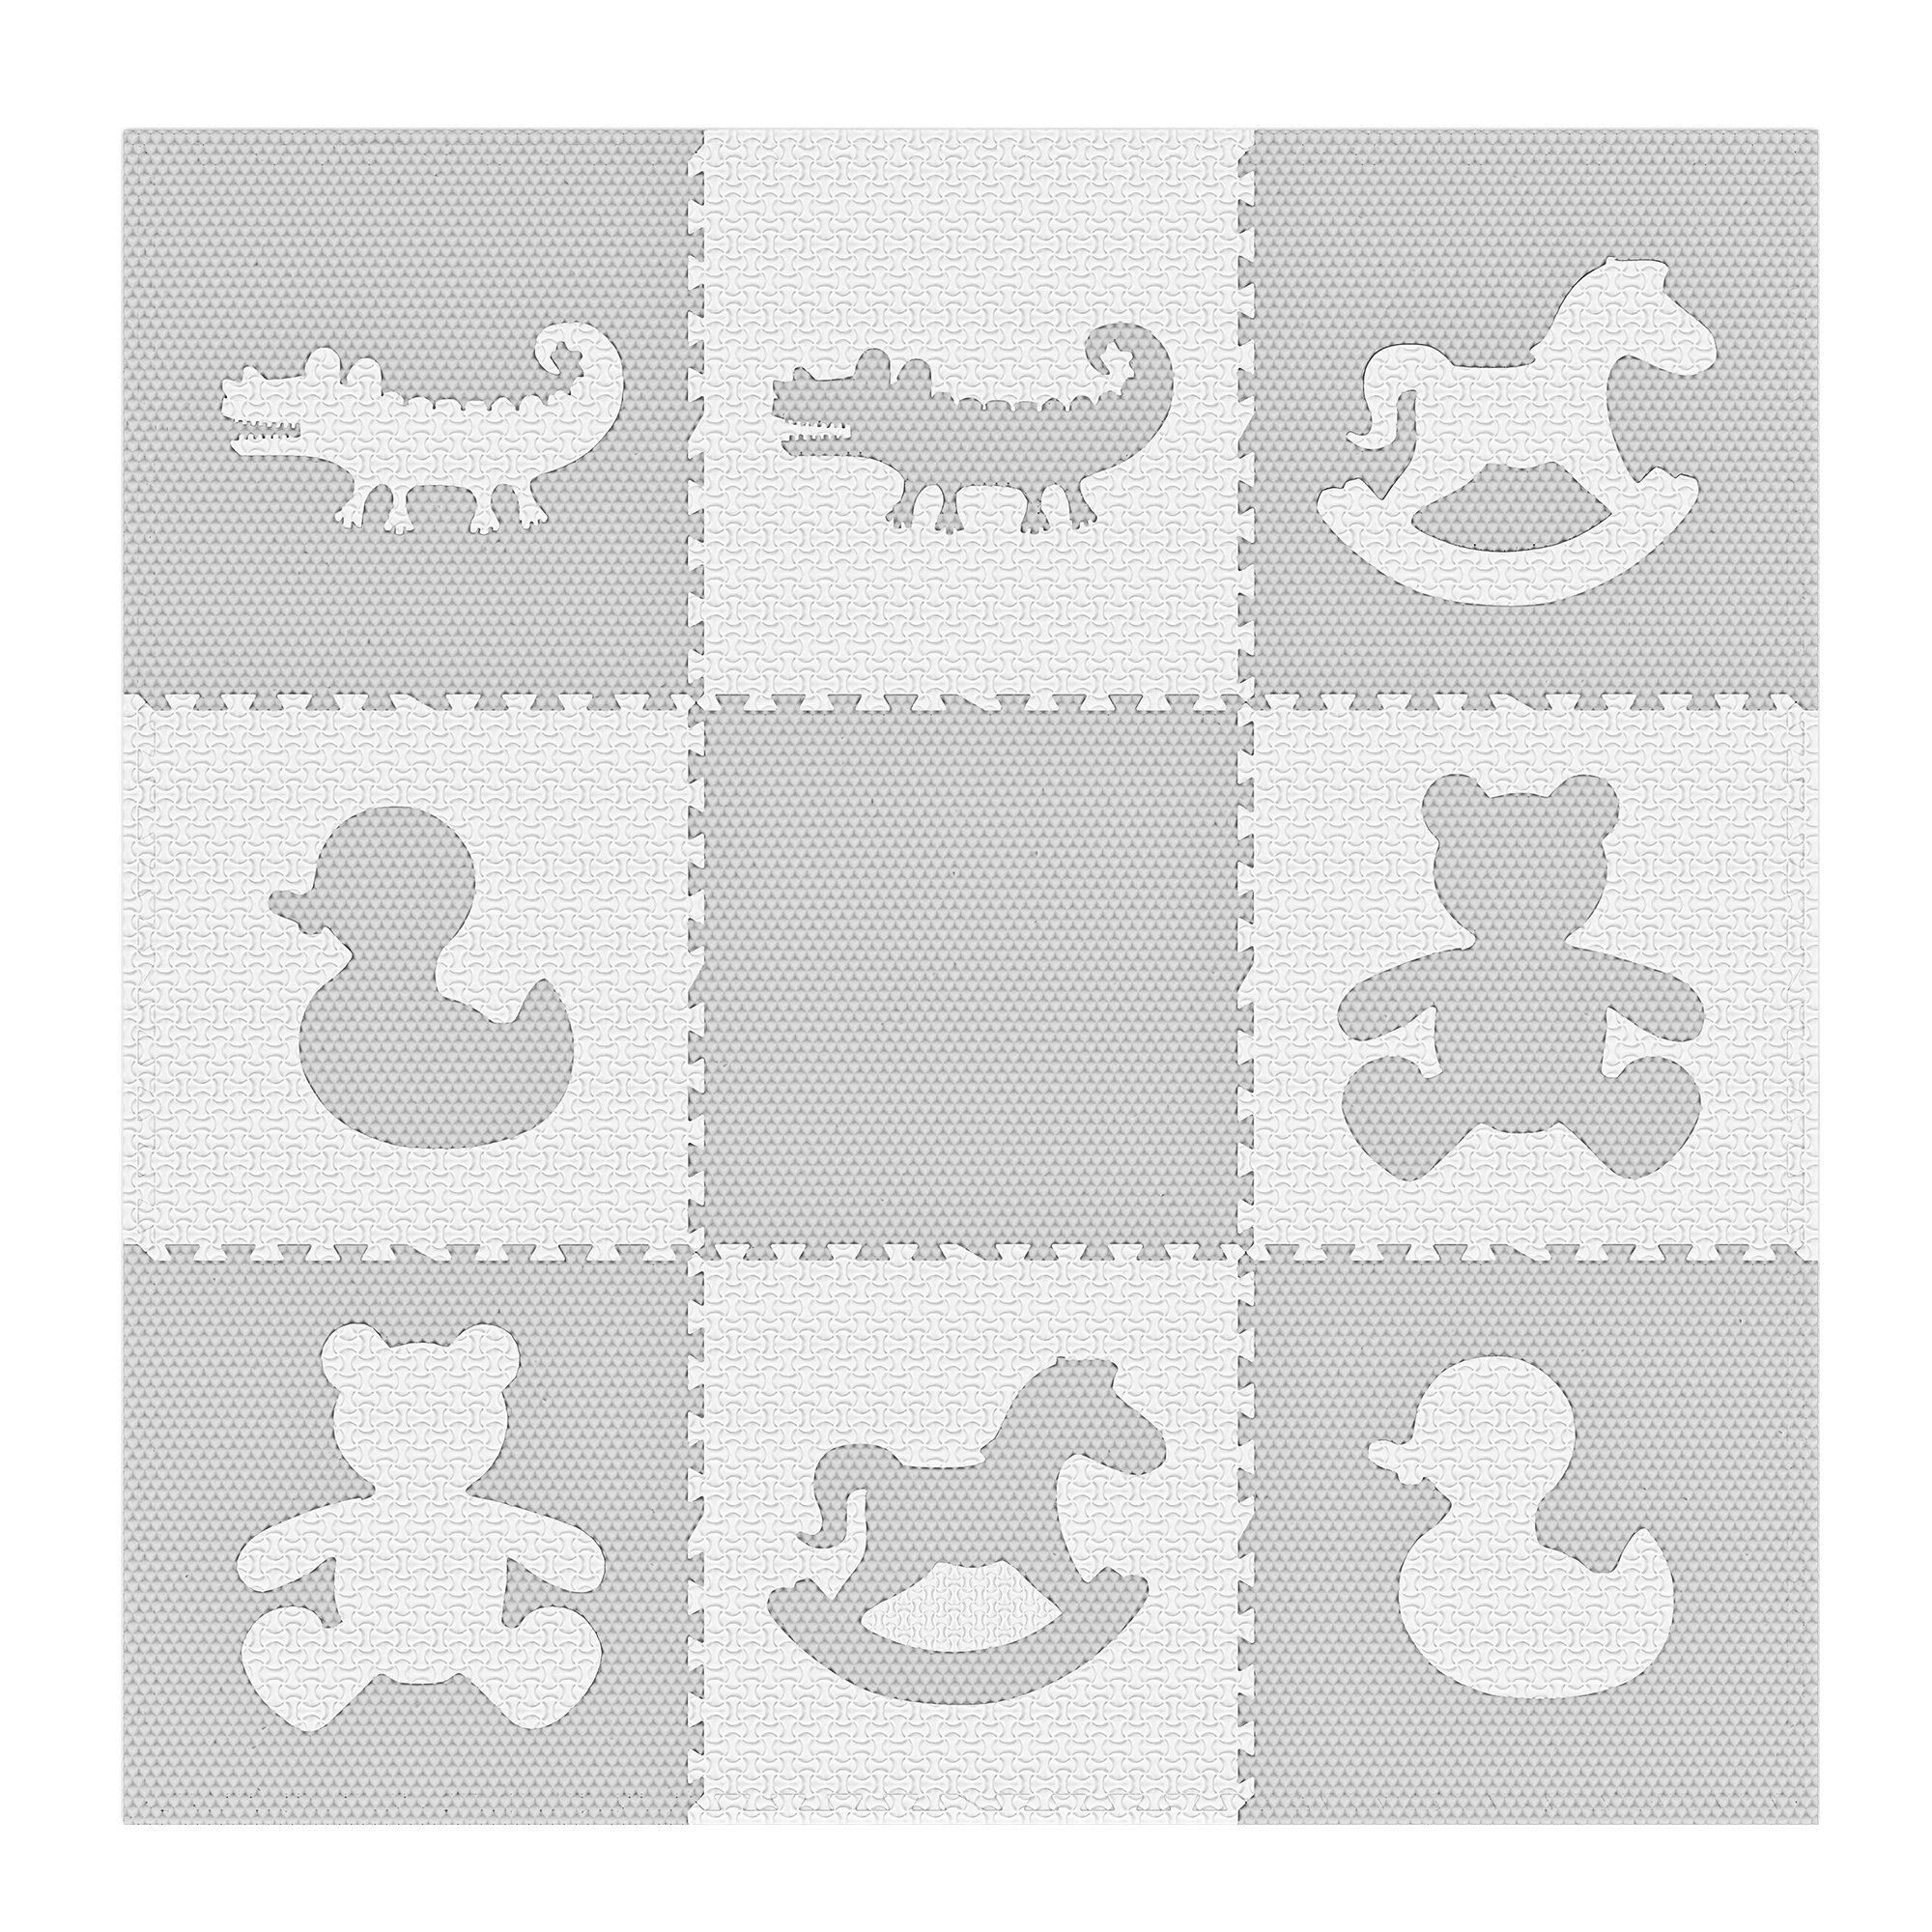 Gorgeous Home Decor,White,4 Garage Baby Interlocking Foam Play Mat Perfect for Floor Protection Exercise Soft Play Mats for Kids Yoga Playroom